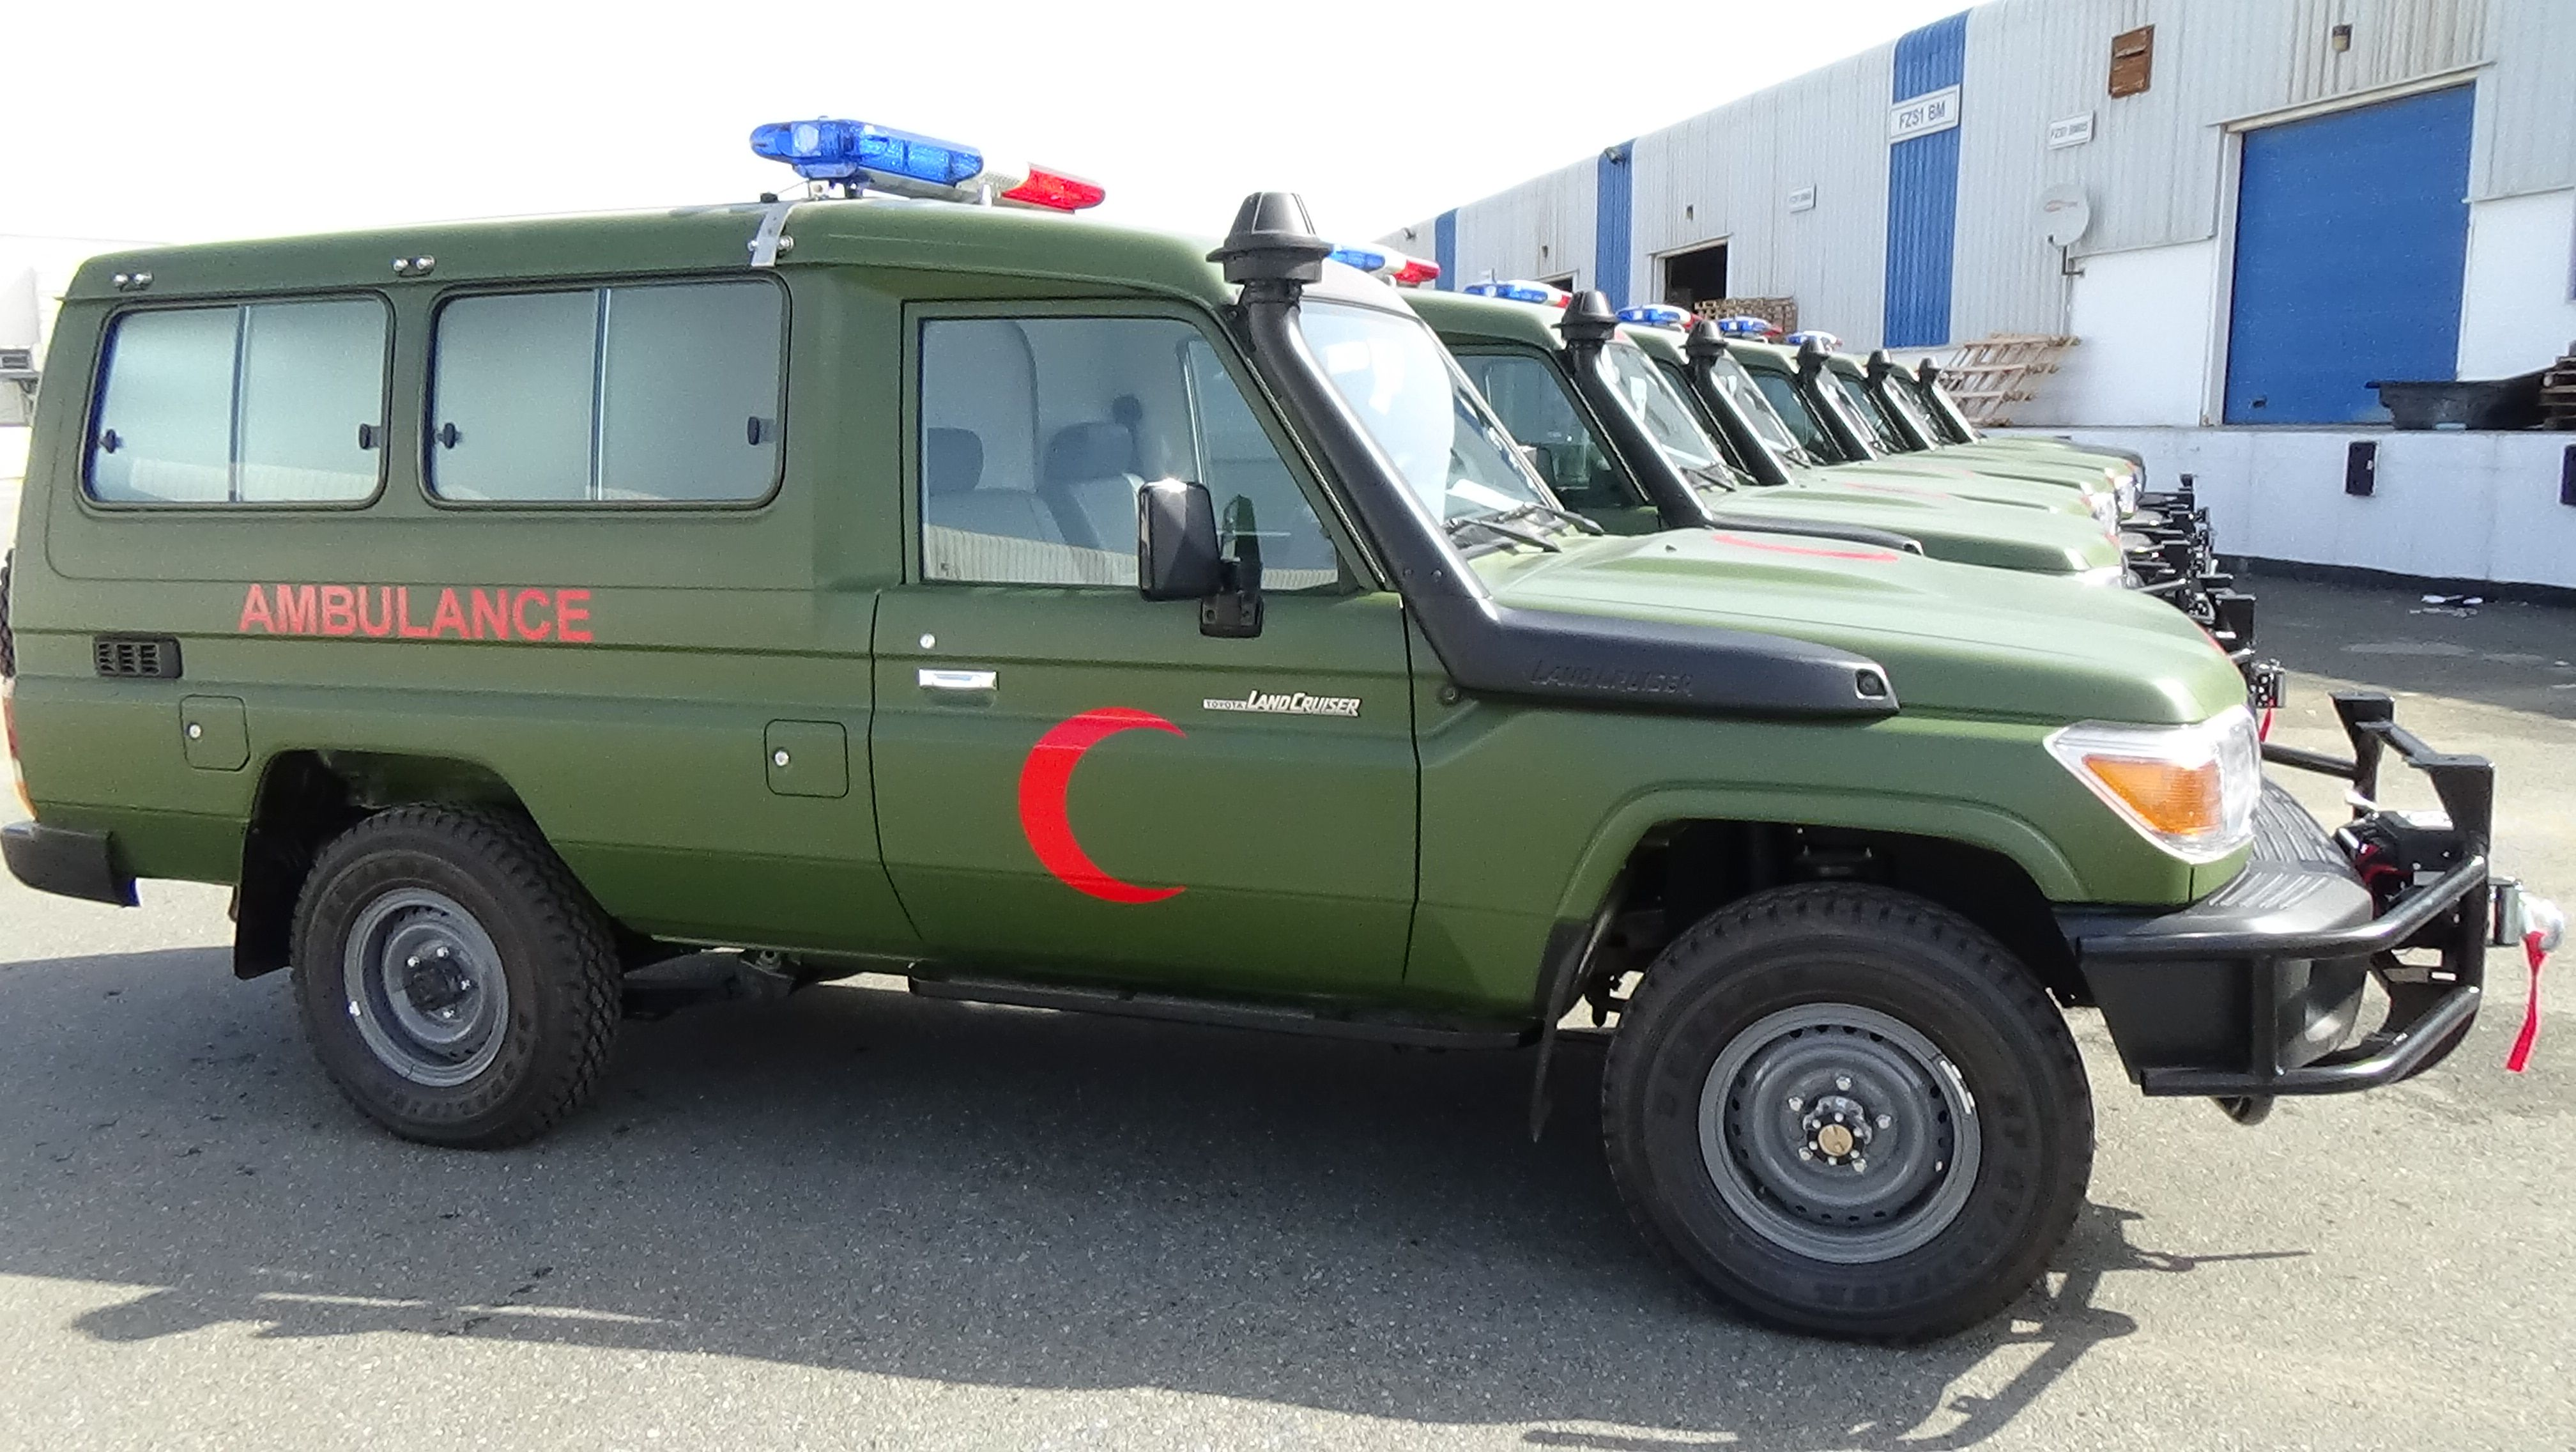 c7269b60087c2d TOYOTA LAND CRUISER AMBULANCE CONVERSION IN VLADCO FZE   VLADCO FZE 4x4  Accessories And Modification